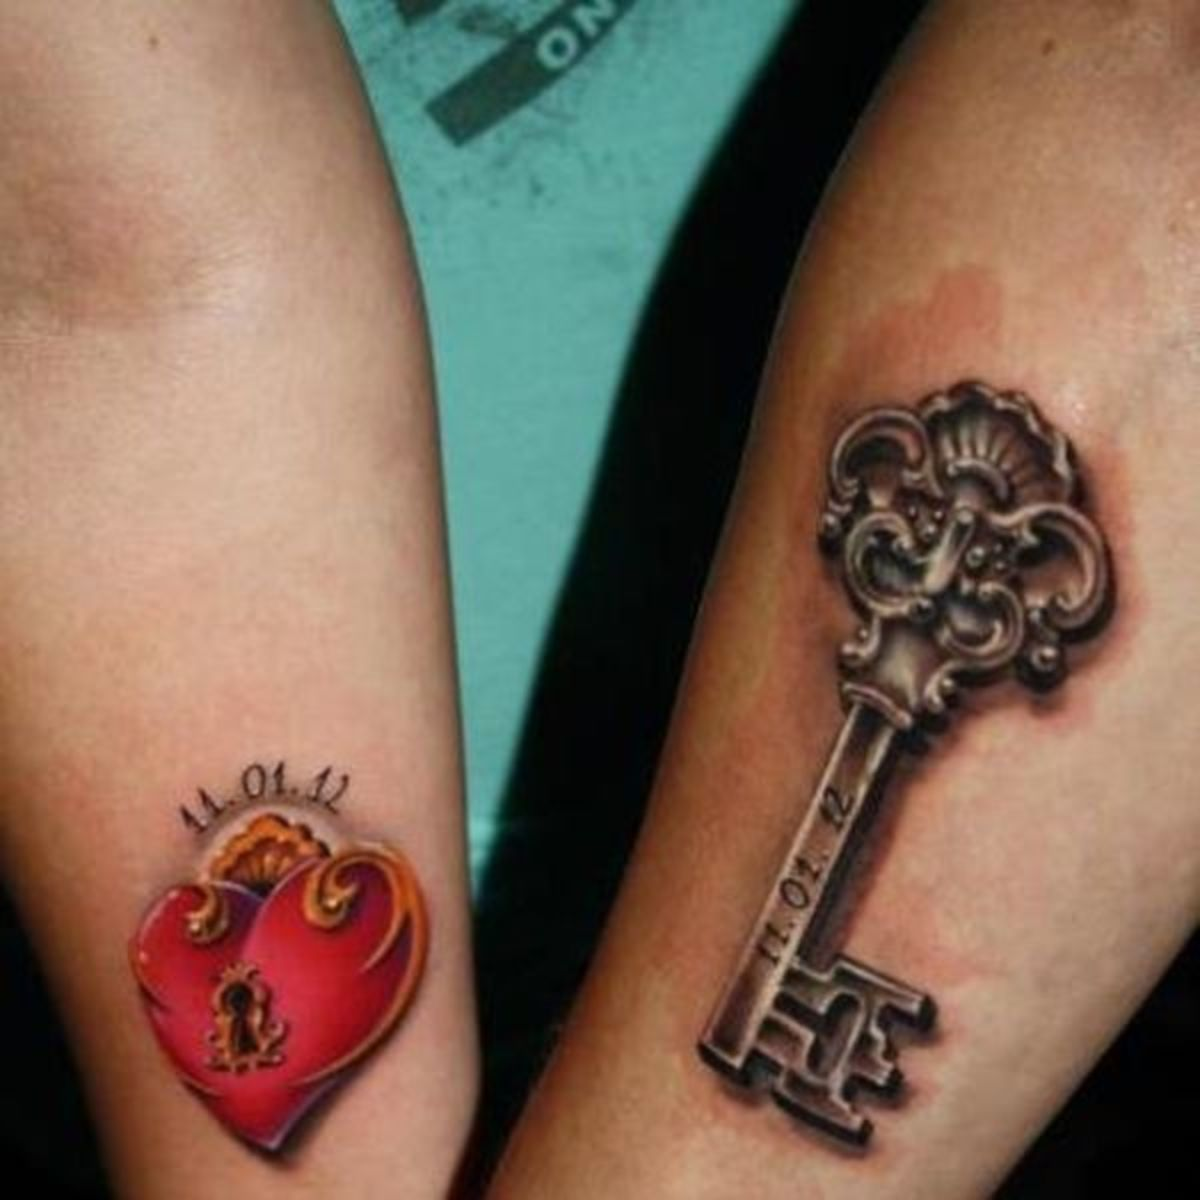 key-and-heart-couples-tattoos